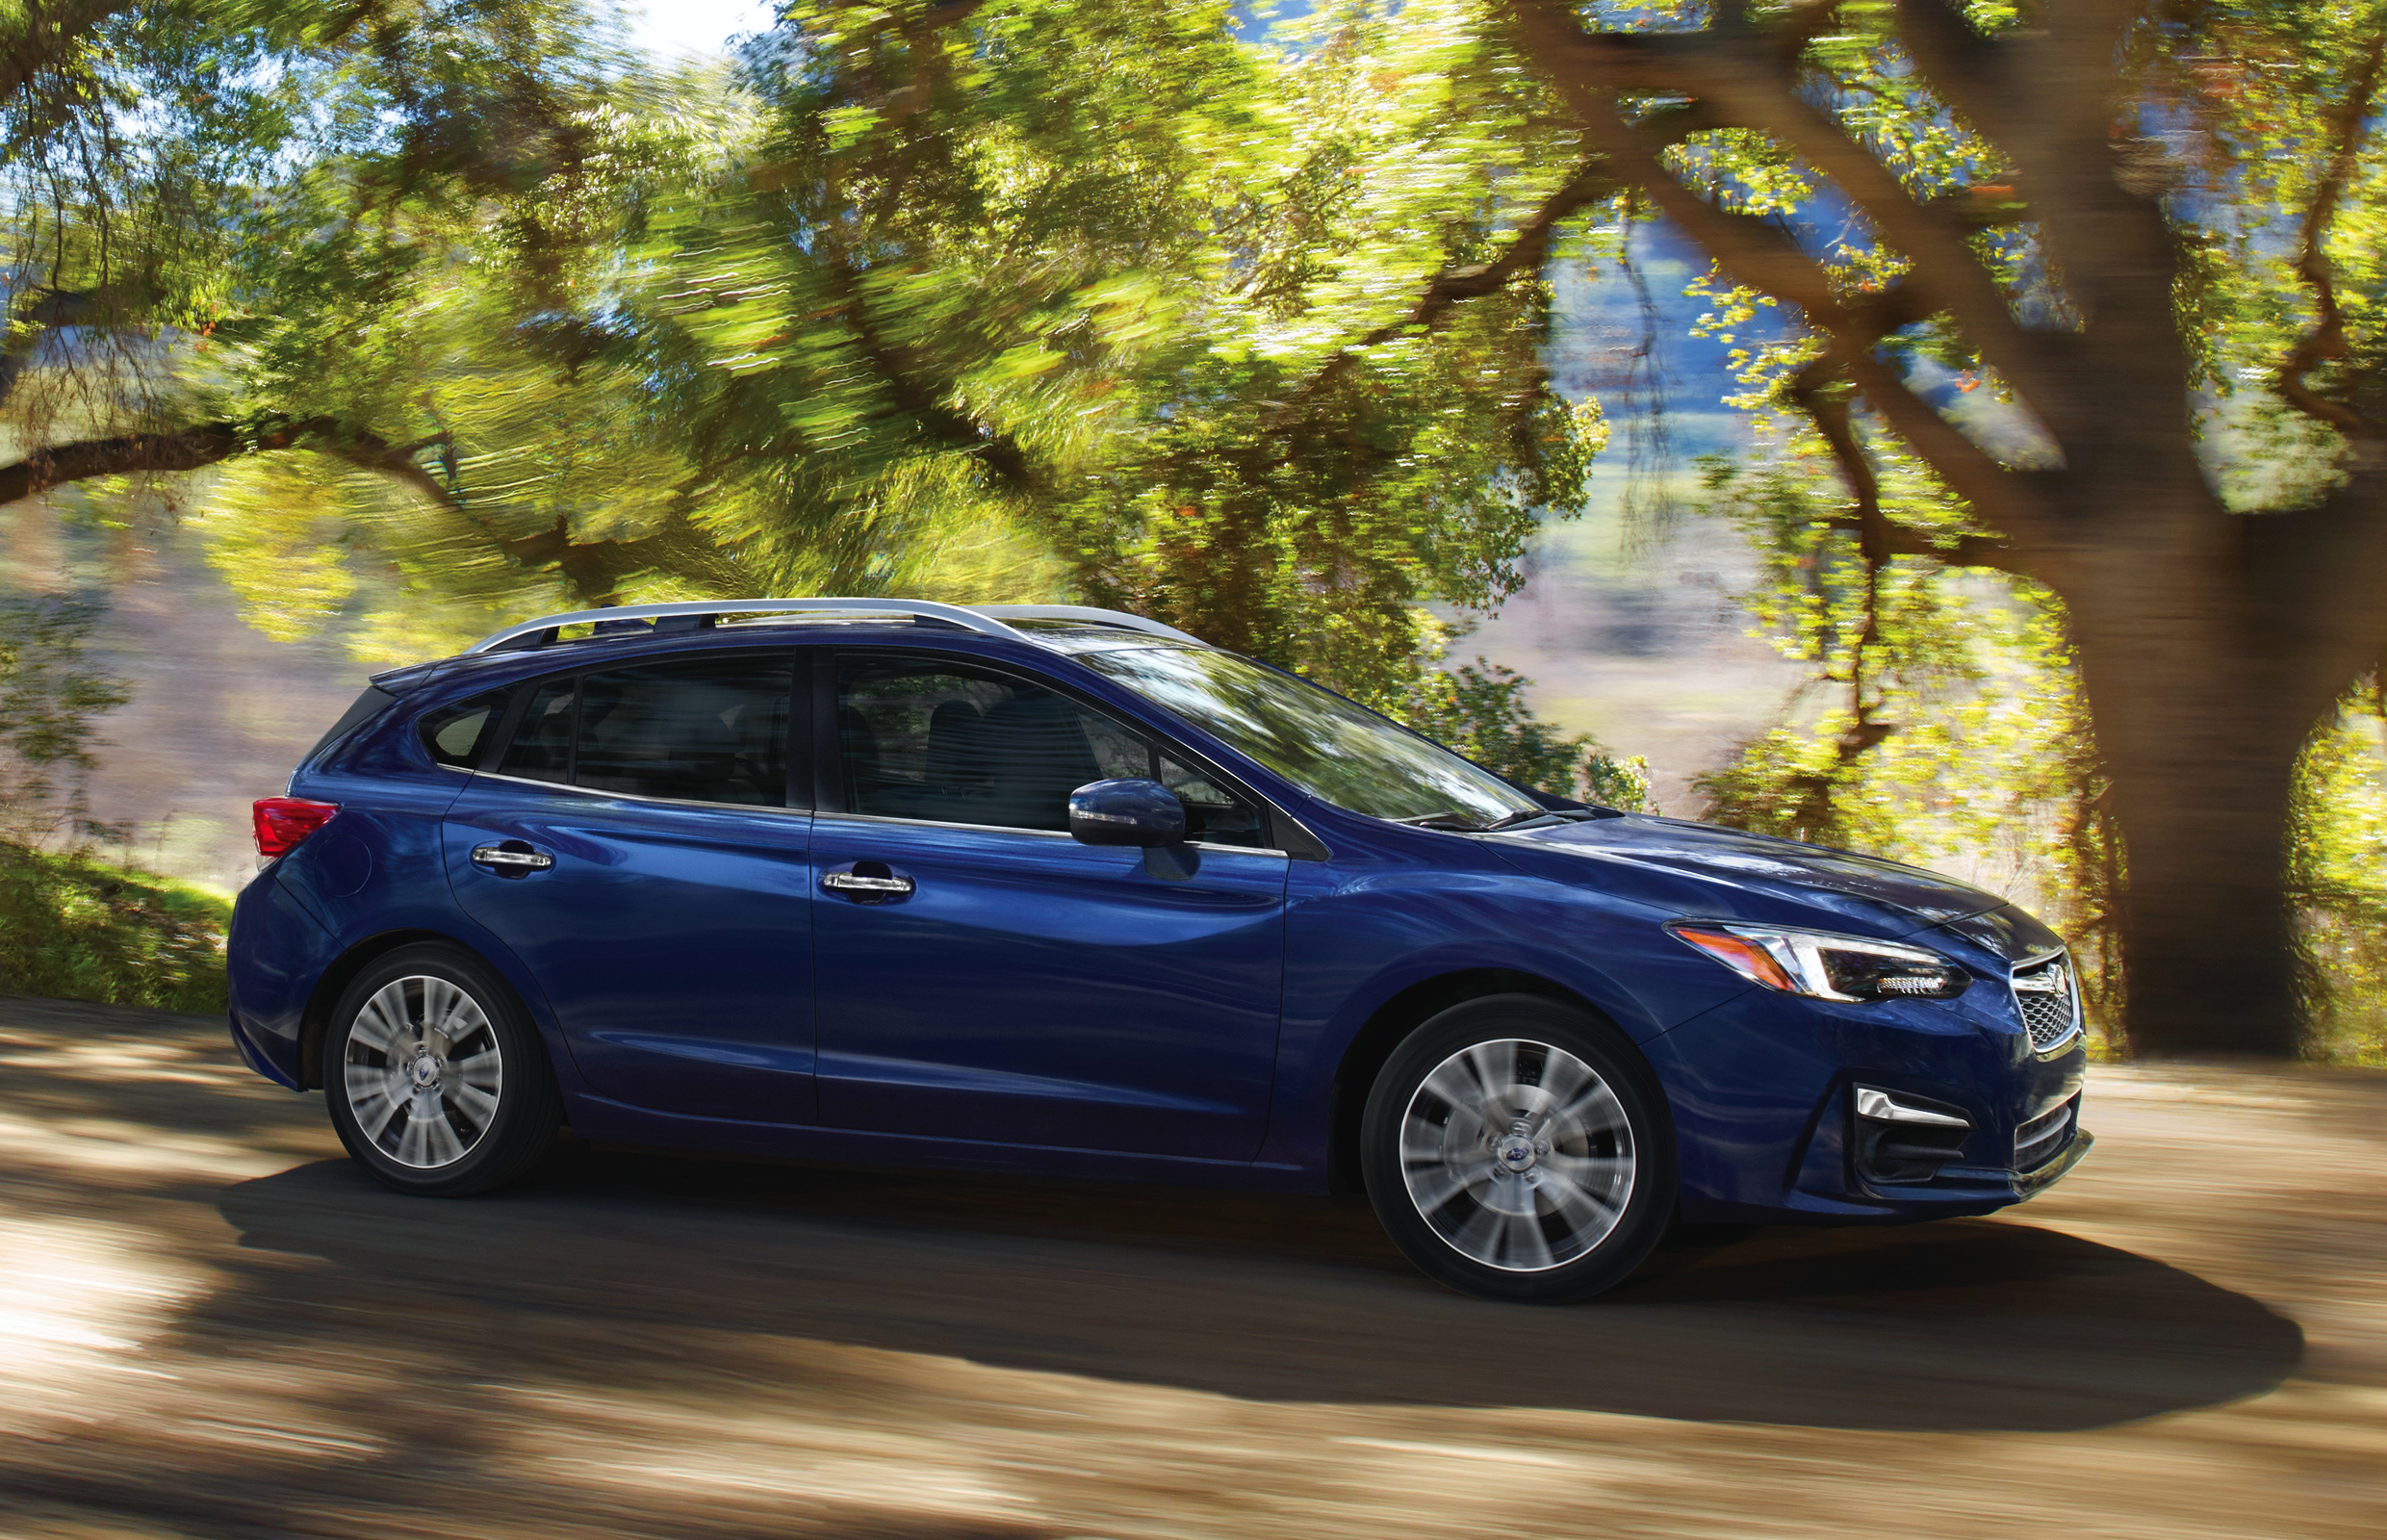 Cars for Sale Near Me Under 30000 New 7 All Wheel Drive Vehicles Under $30 000